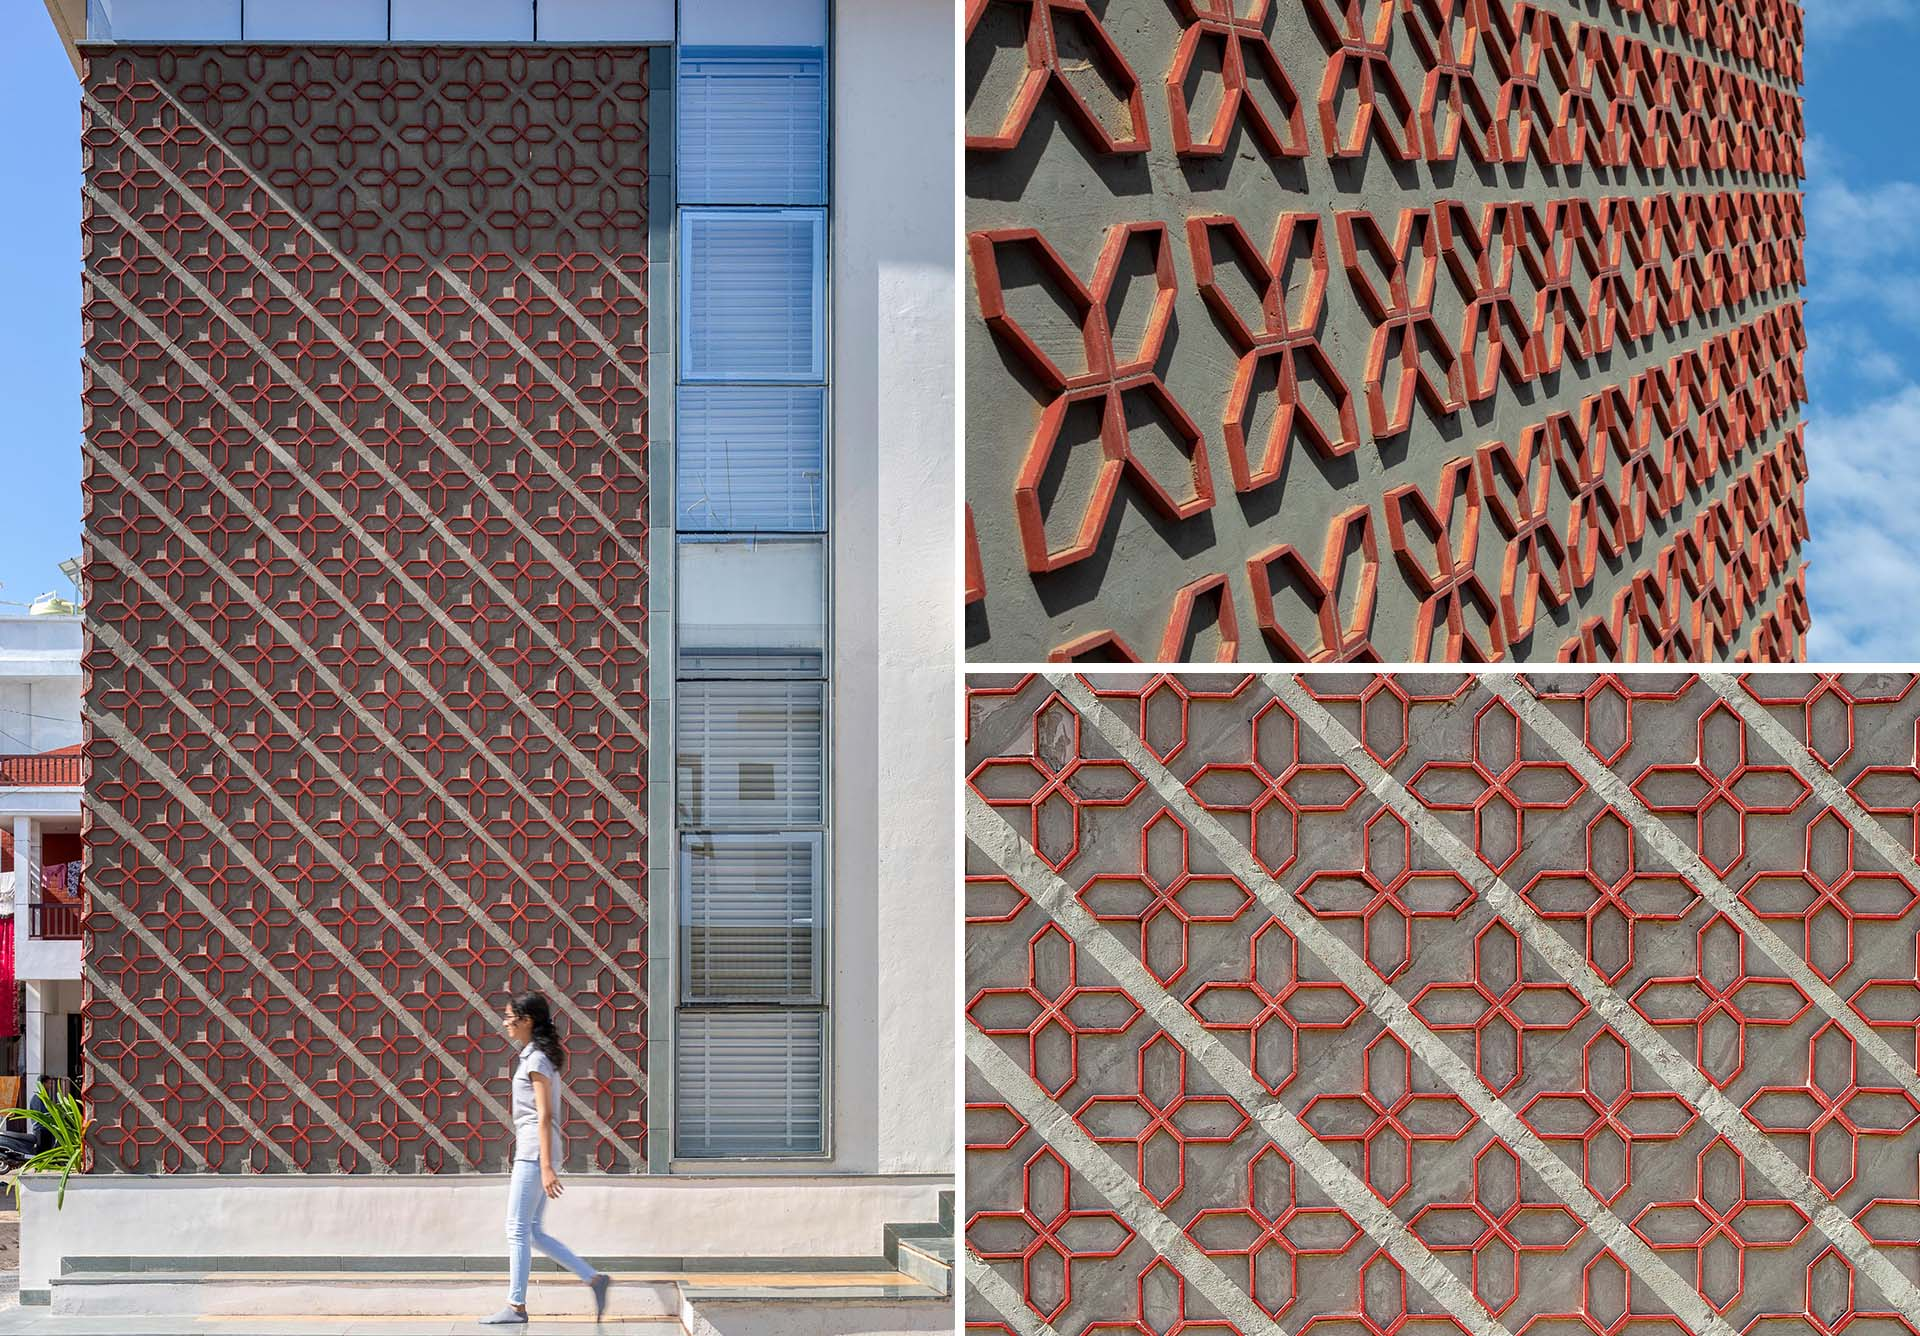 A Patterned Accent Wall Made From Cut Clay Roof Tiles Is Featured On The Exterior Of This New Home